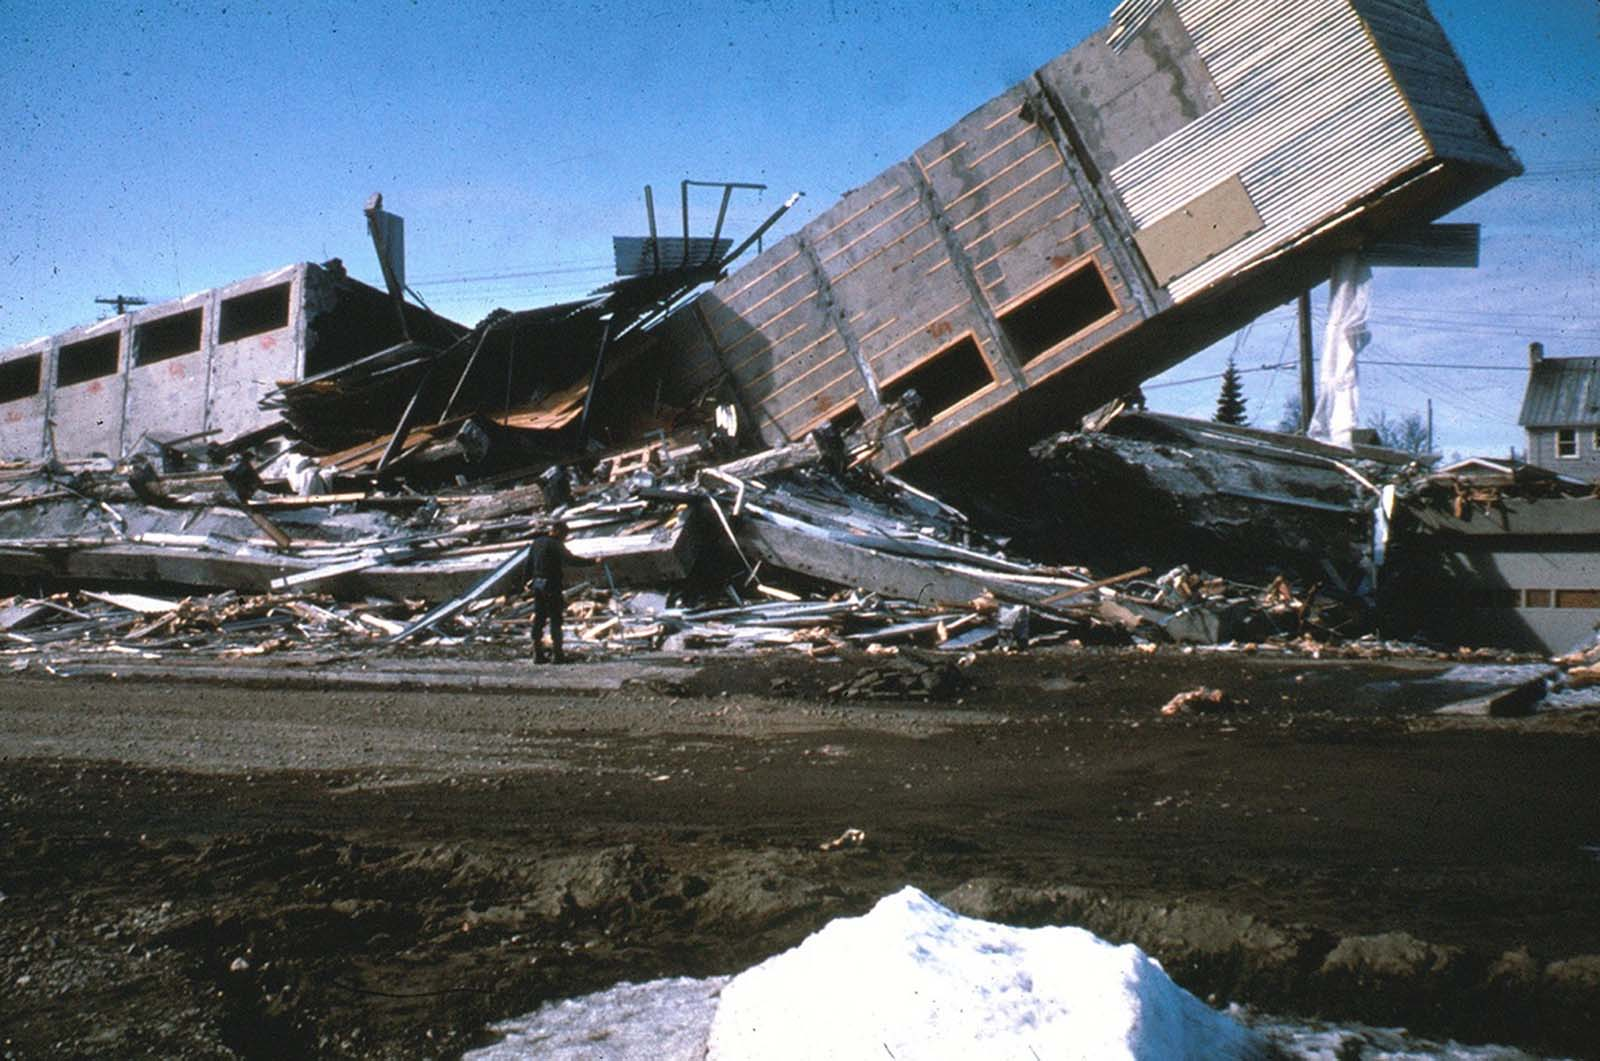 The Four Seasons Apartments in Anchorage was a six-story lift-slab reinforced concrete building which collapsed during the earthquake. The building was under construction, but structurally completed, at the time of the quake.